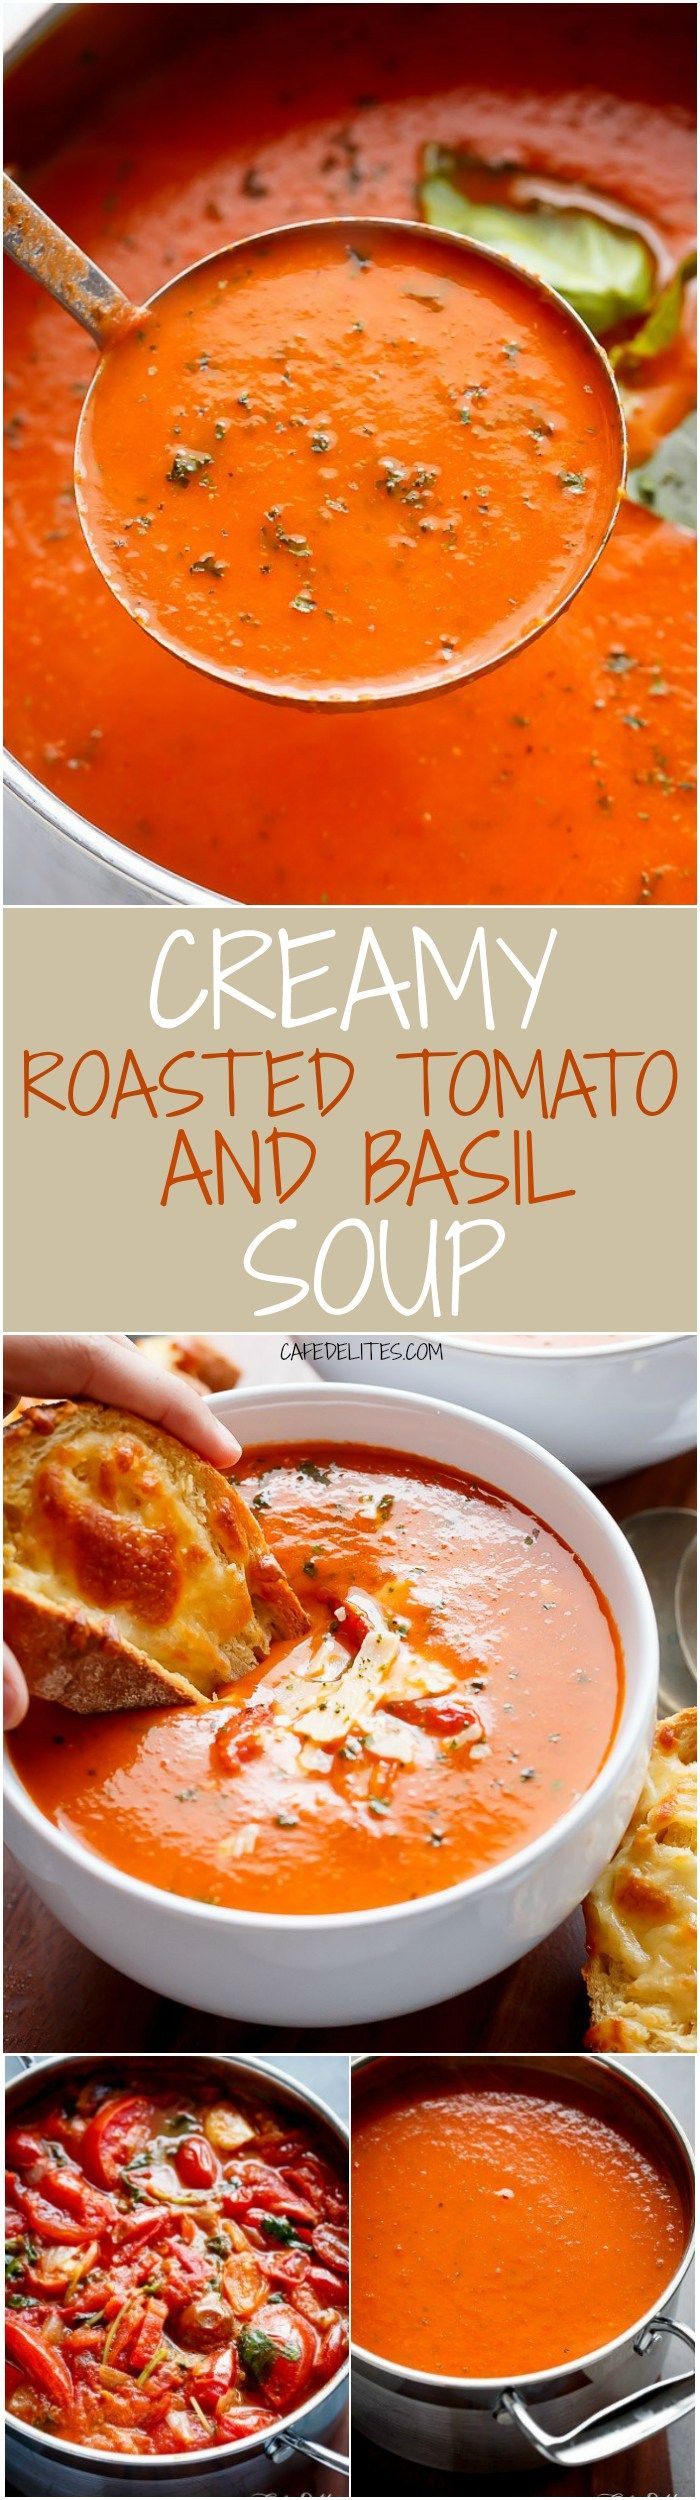 A Creamy Roasted Tomato Basil Soup full of incredible flavours, naturally thickened with no need for cream cheese or heavy creams!                                                                                                                                                                                 More